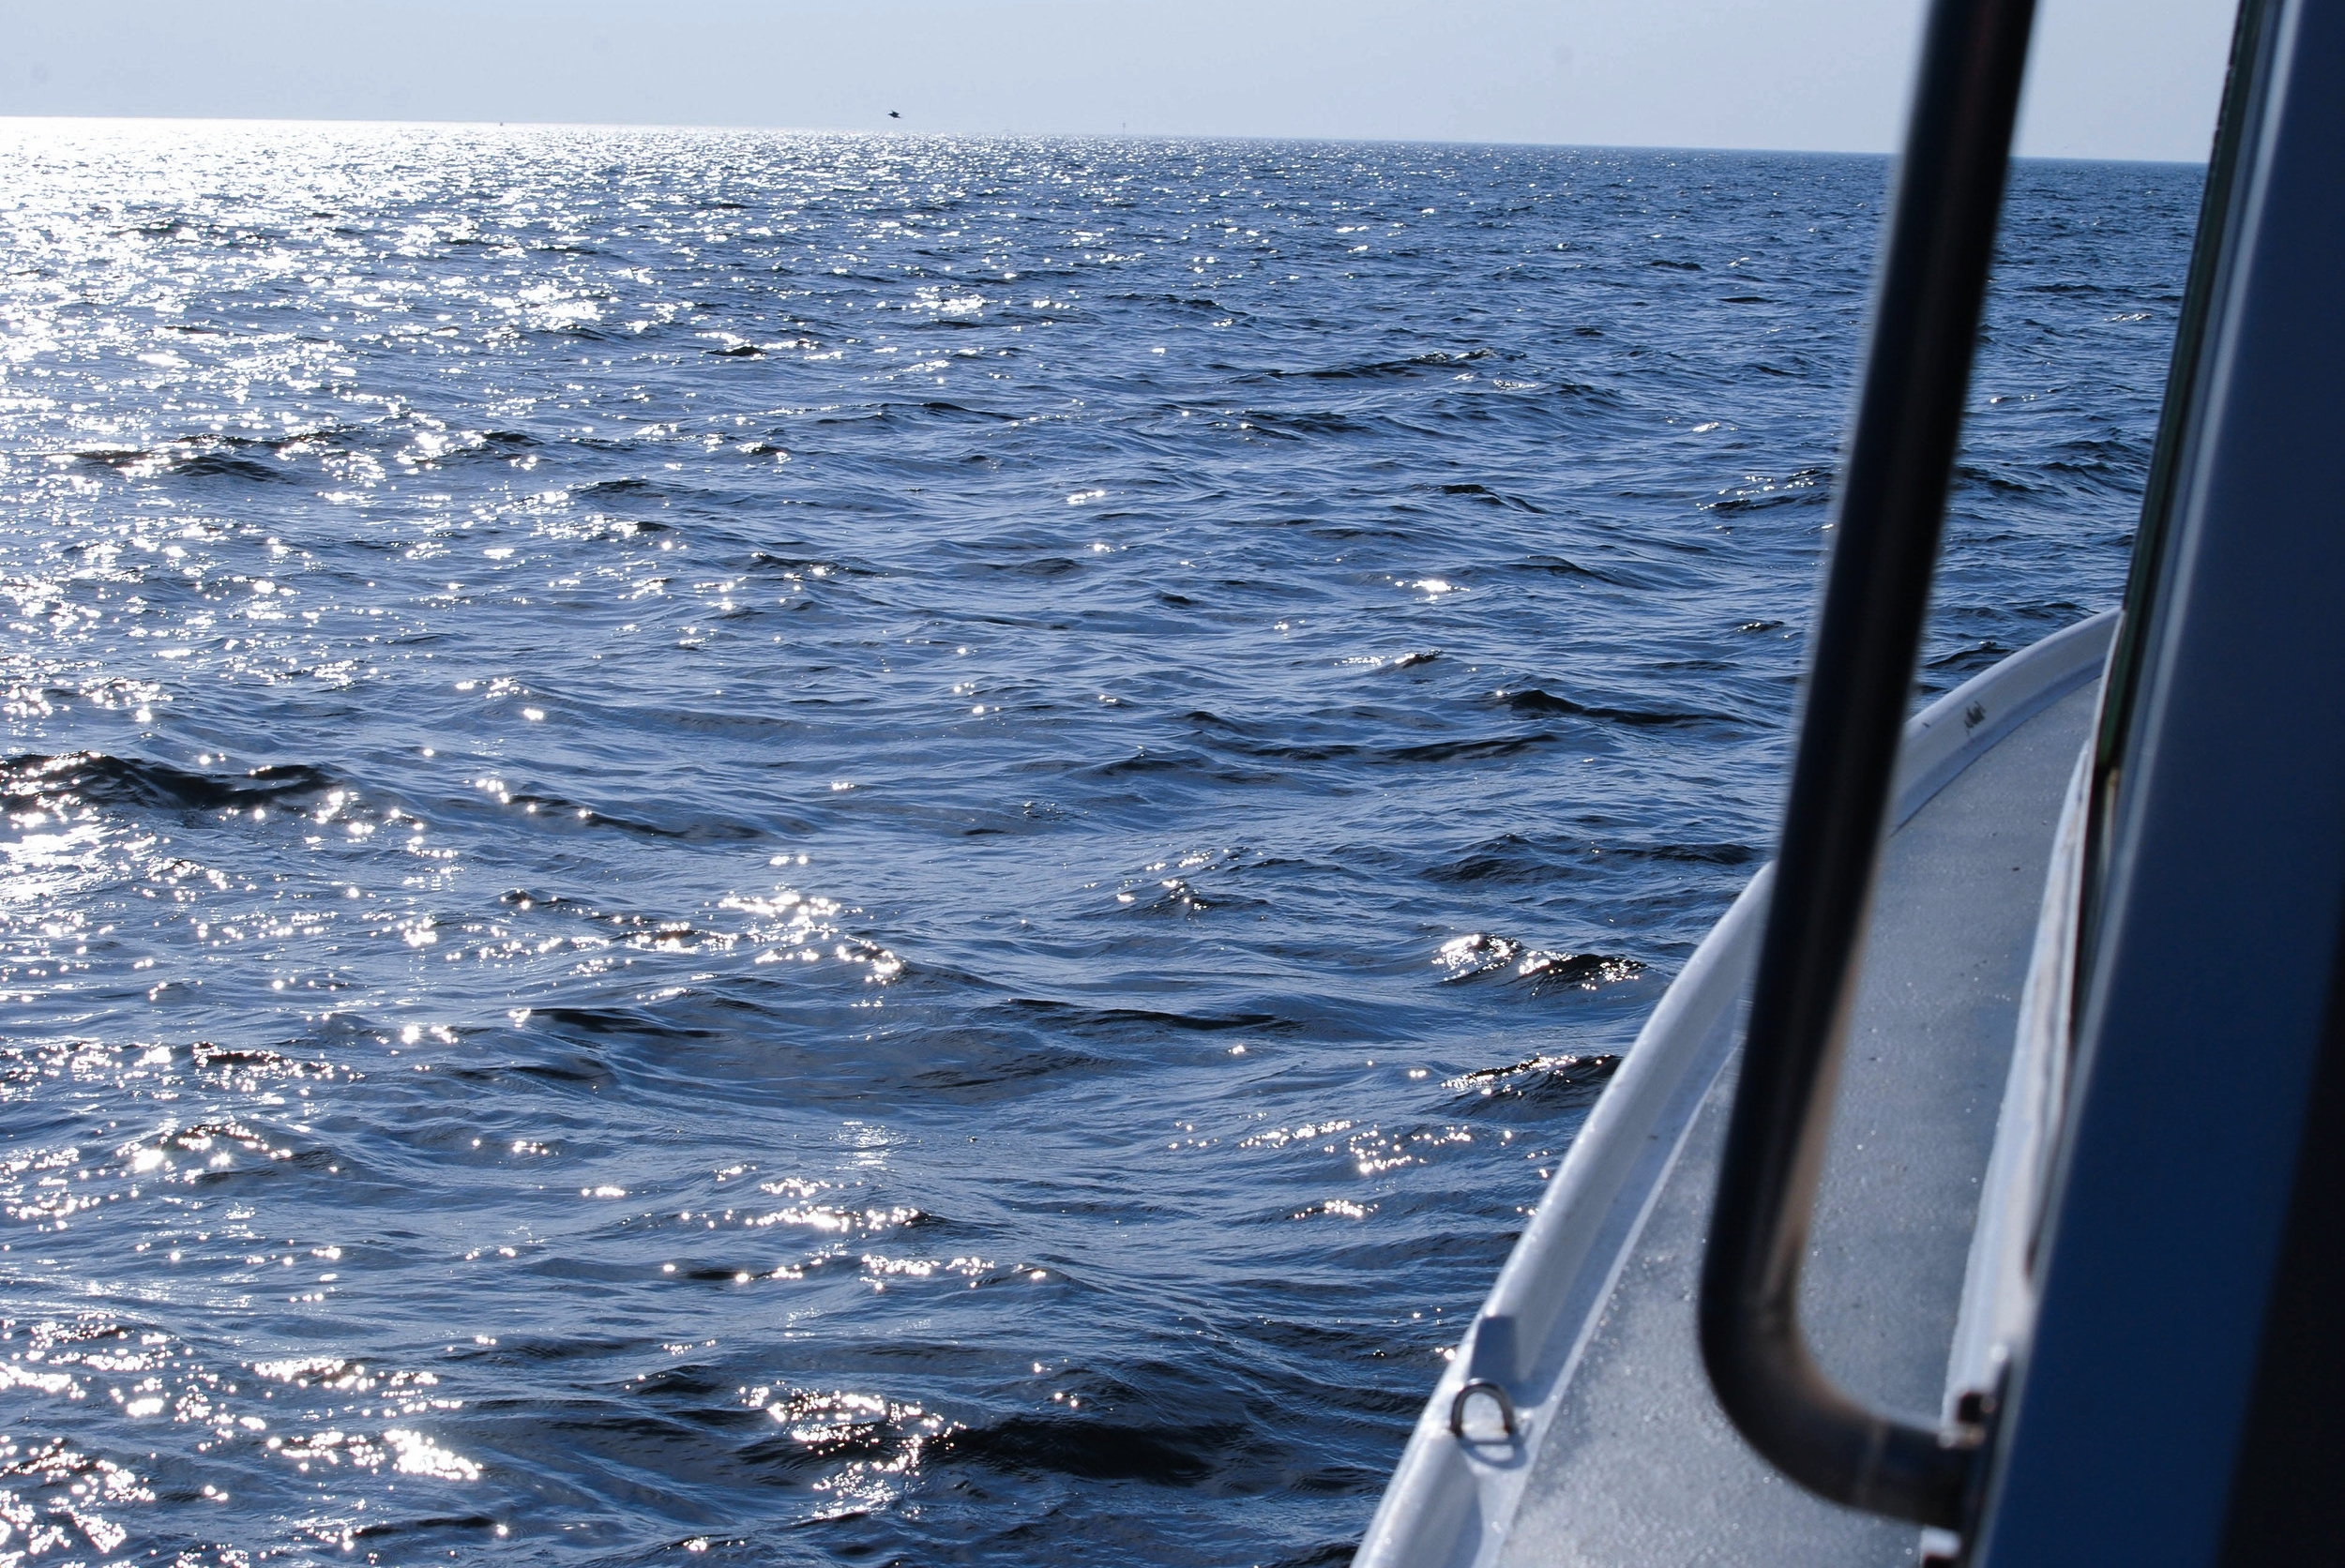 Galway's Weather & Sailing News